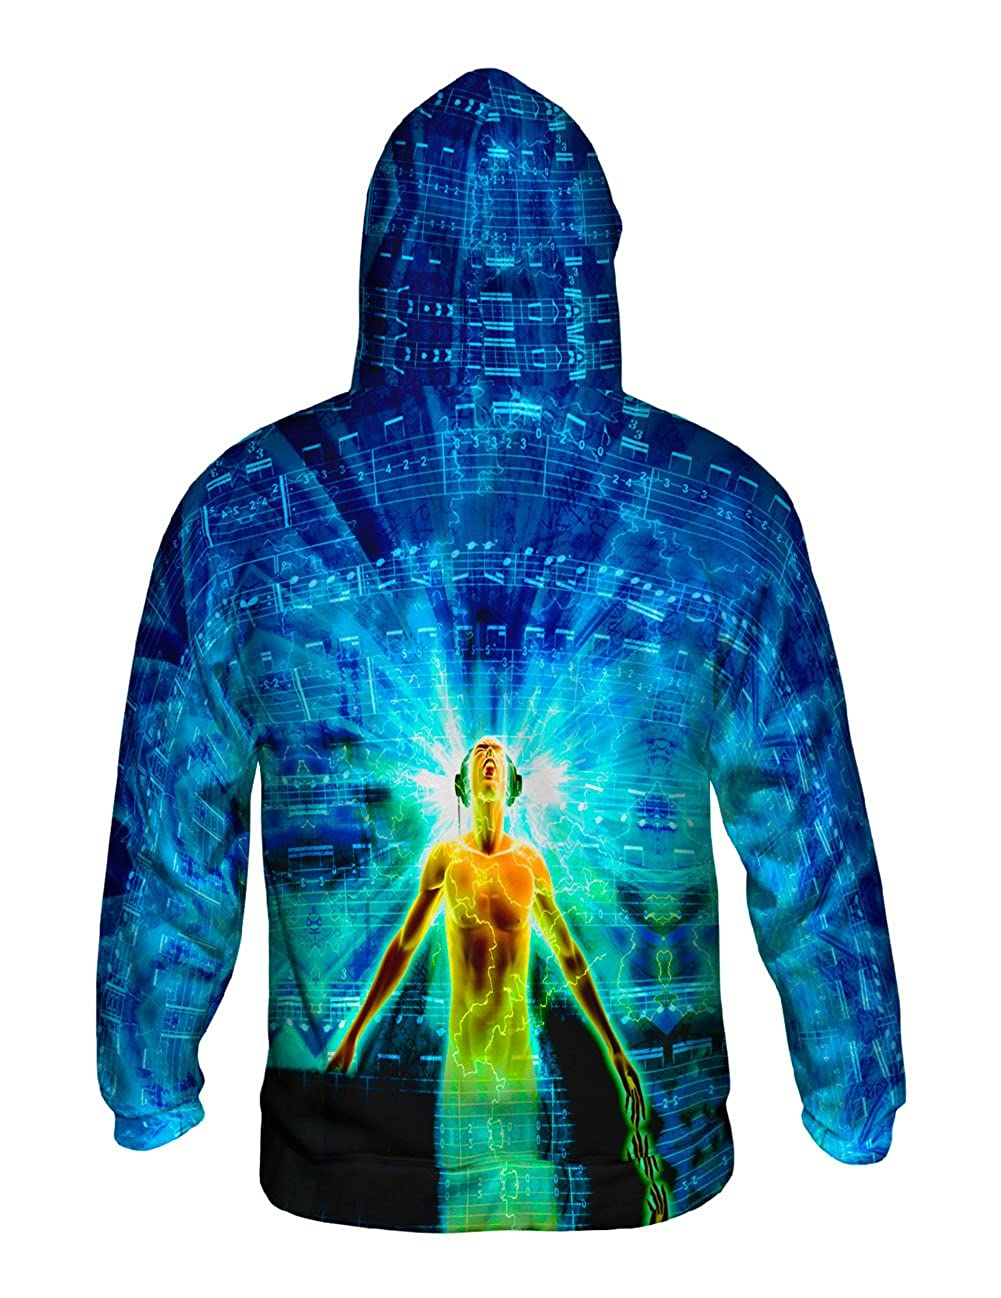 EDM Lost in Music Light Yizzam Allover Print Mens Hoodie Sweater